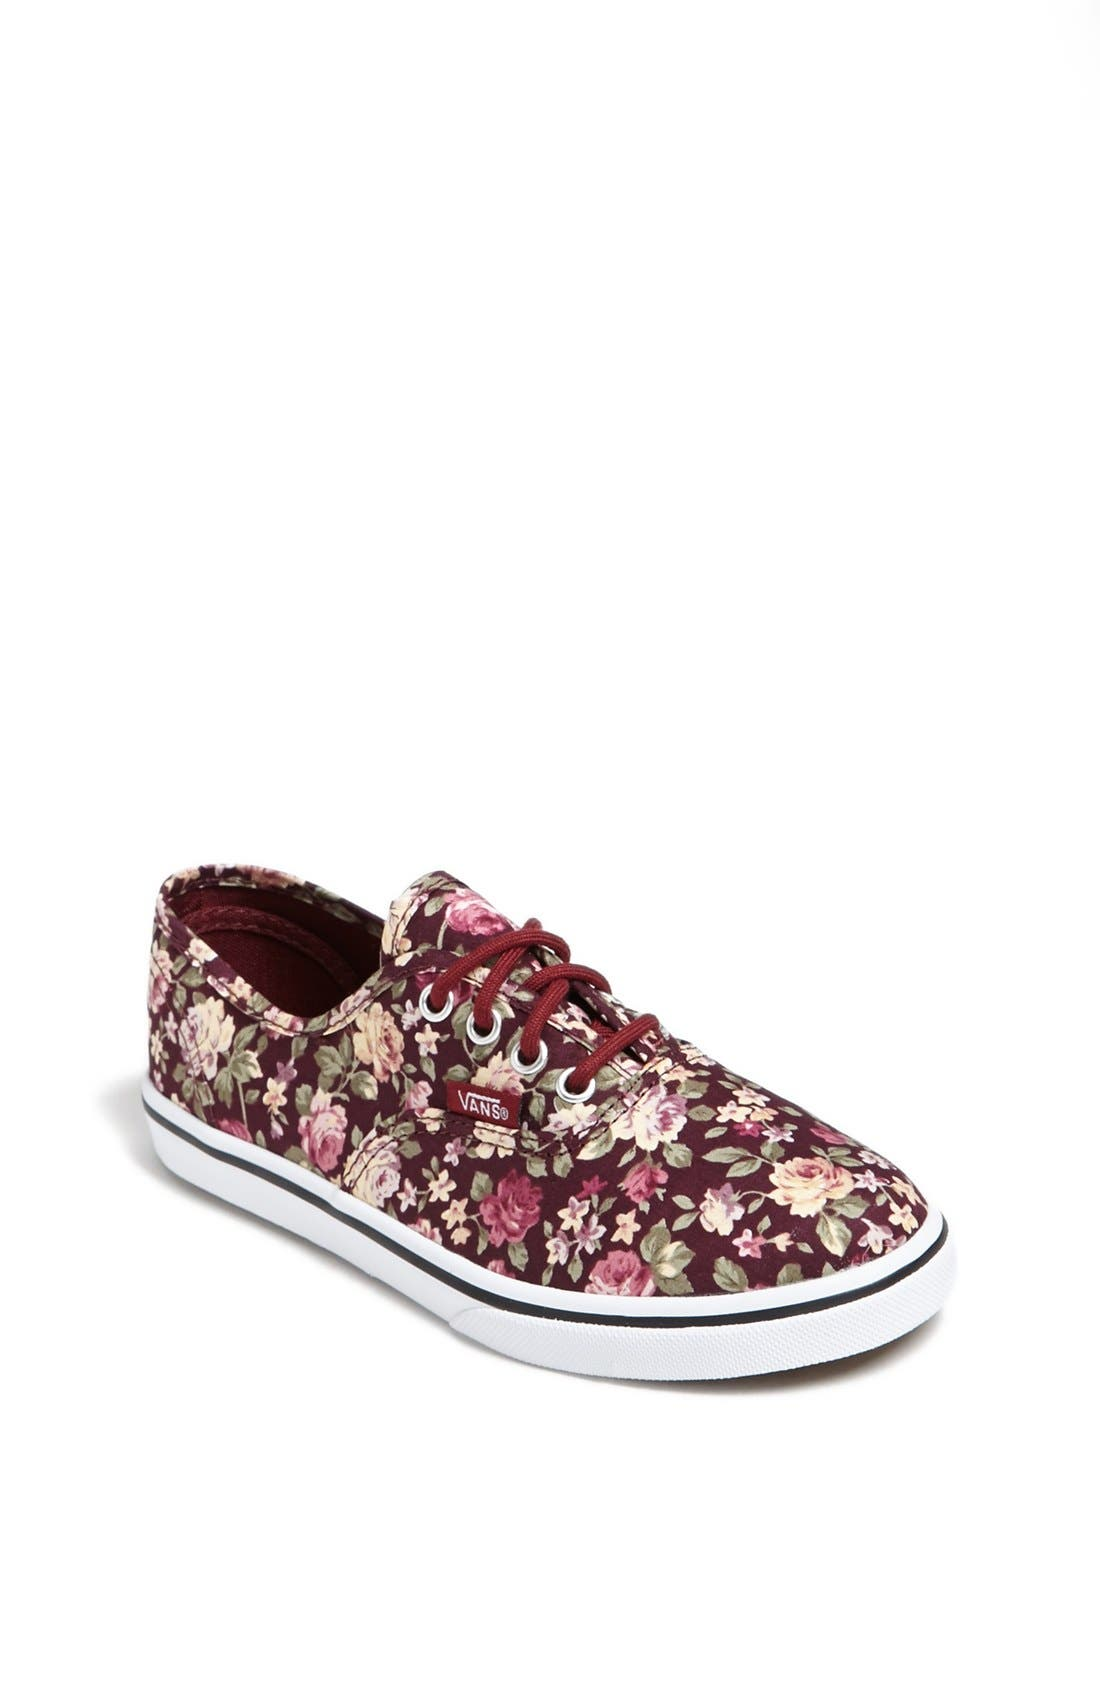 Main Image - Vans 'Authentic Lo Pro - Floral' Sneaker (Toddler, Little Kid & Big Kid)